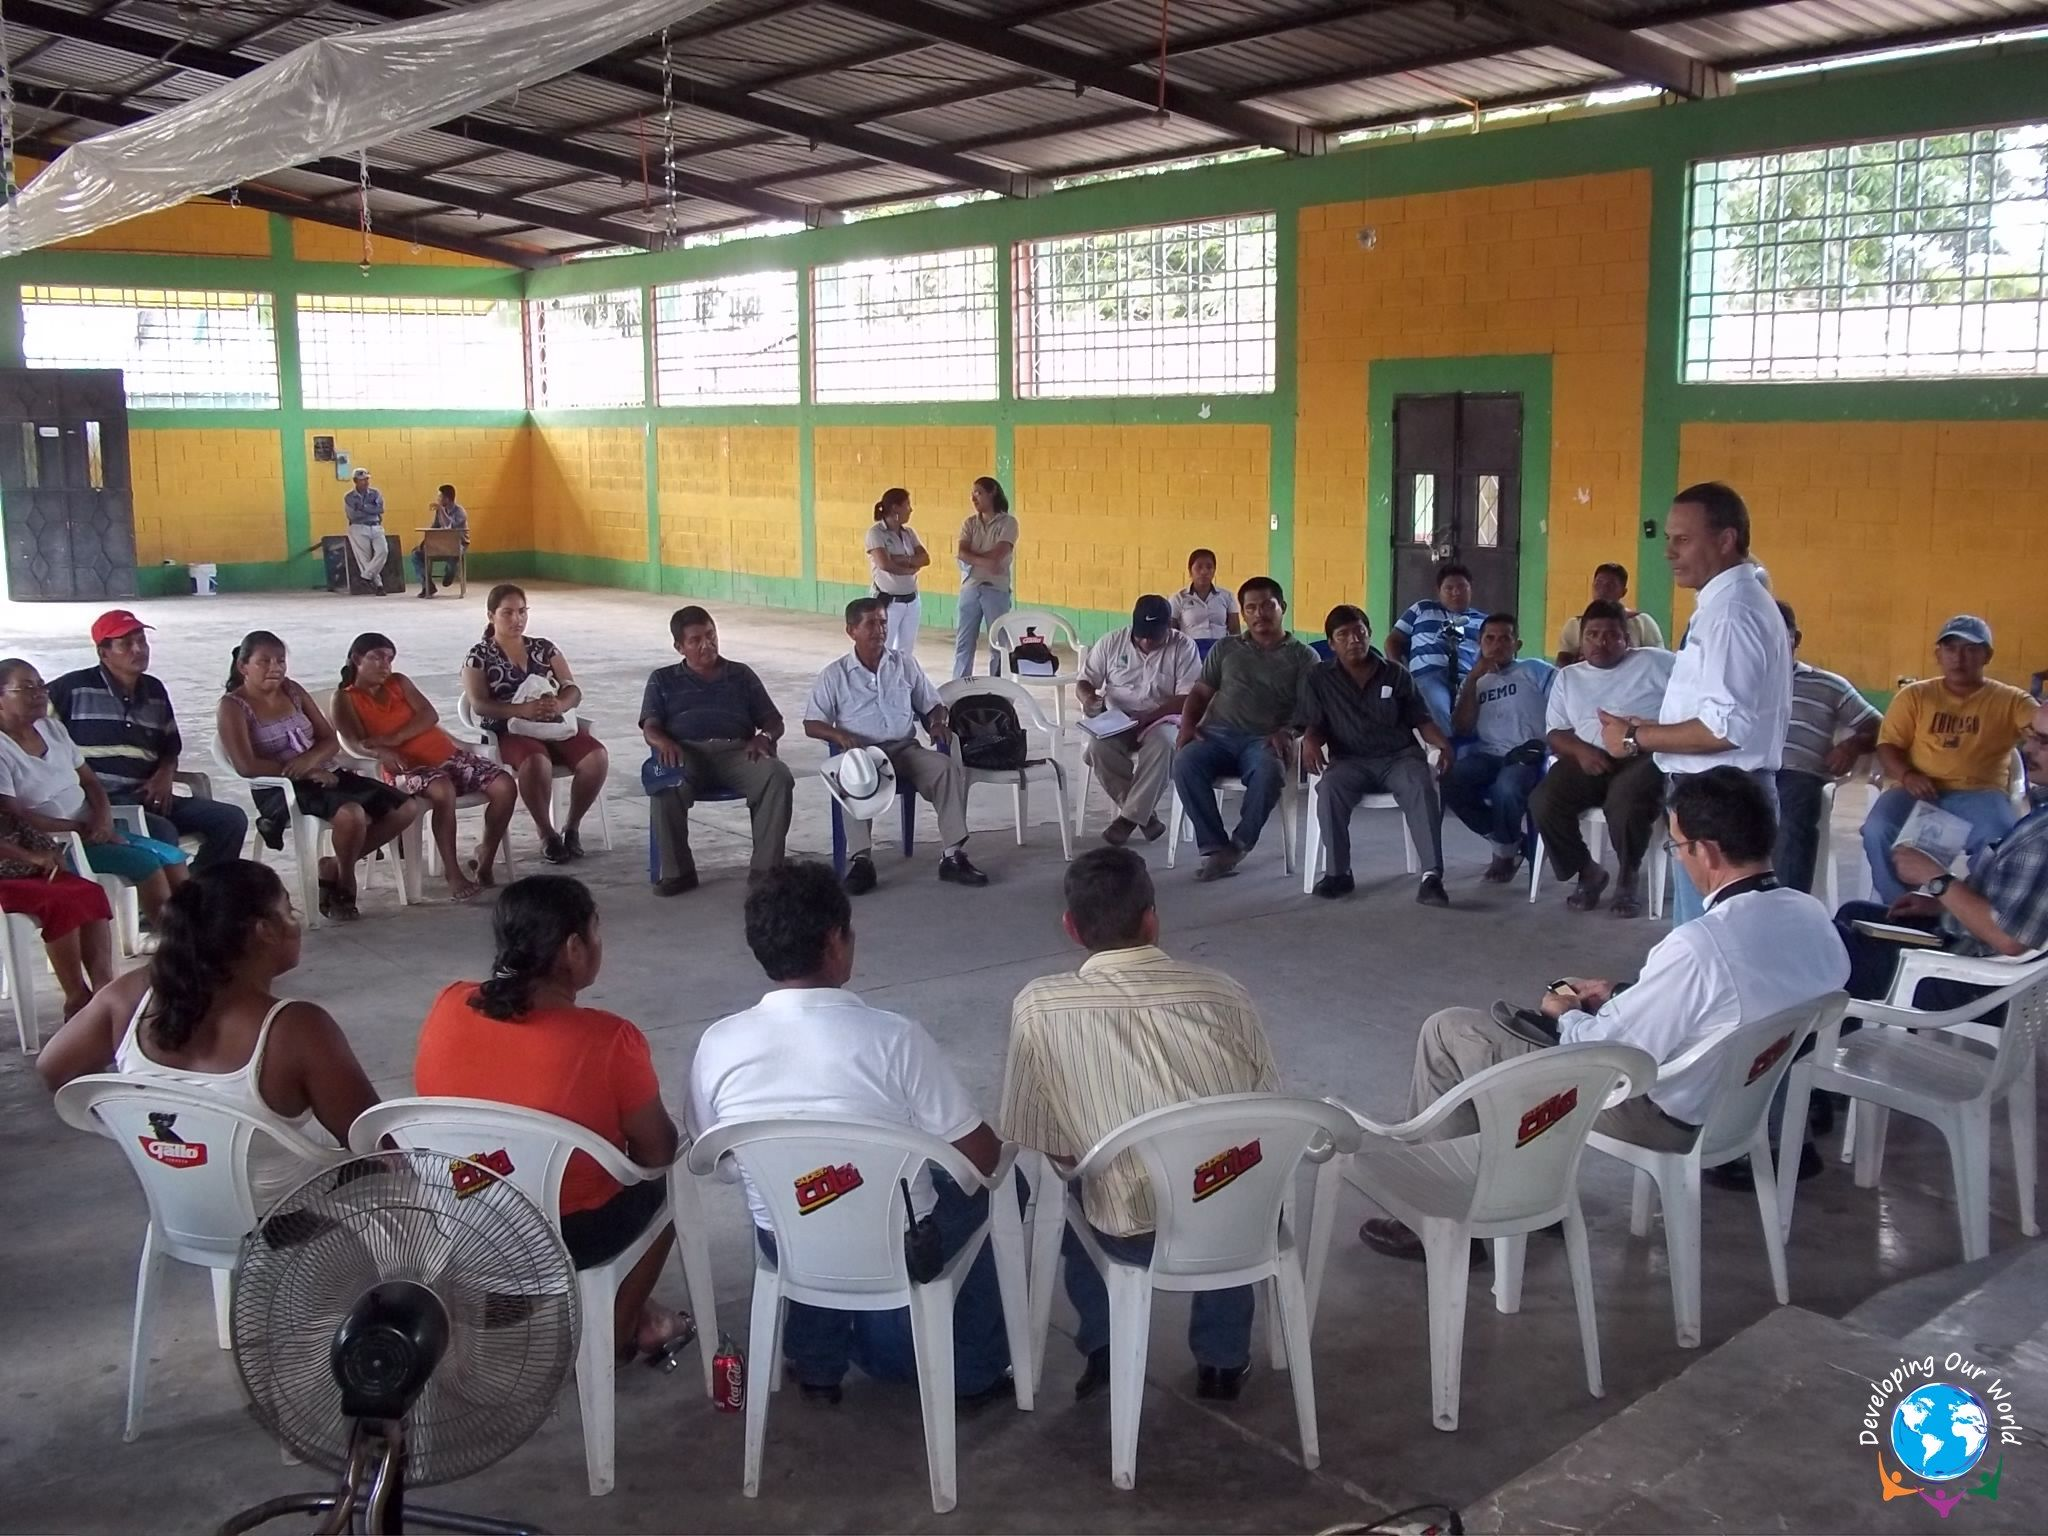 Holistic approach is the key to community development in Guatemala